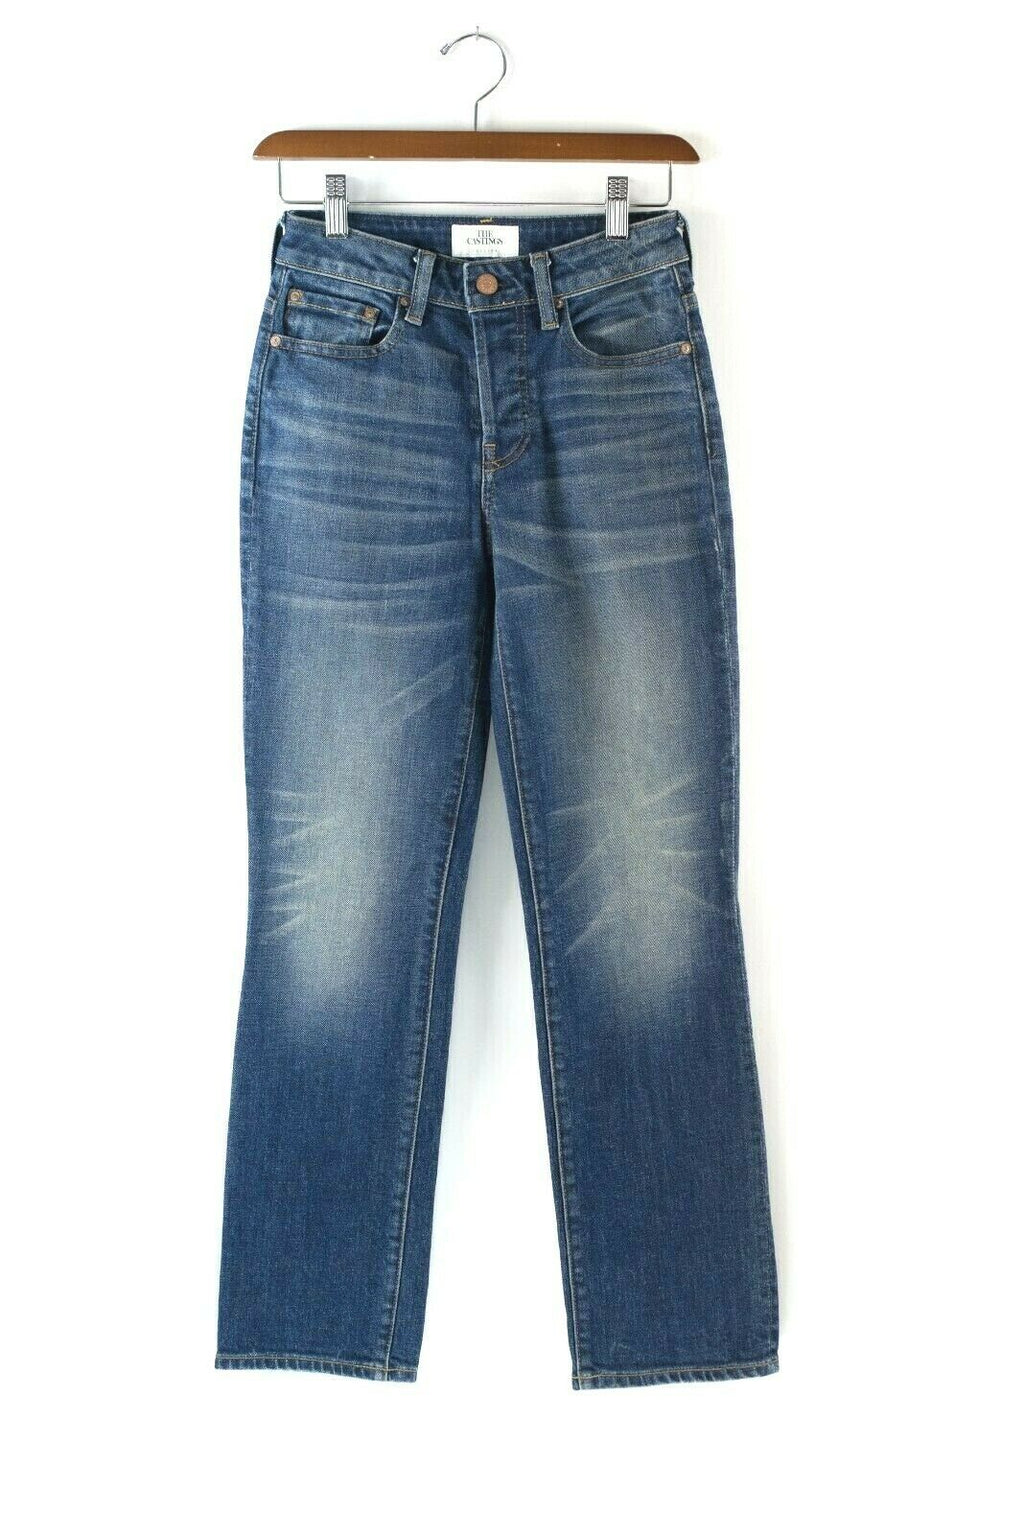 Aritzia The Castings Womens Size 24 XS Blue Jeans High Rise Cropped Denim $225